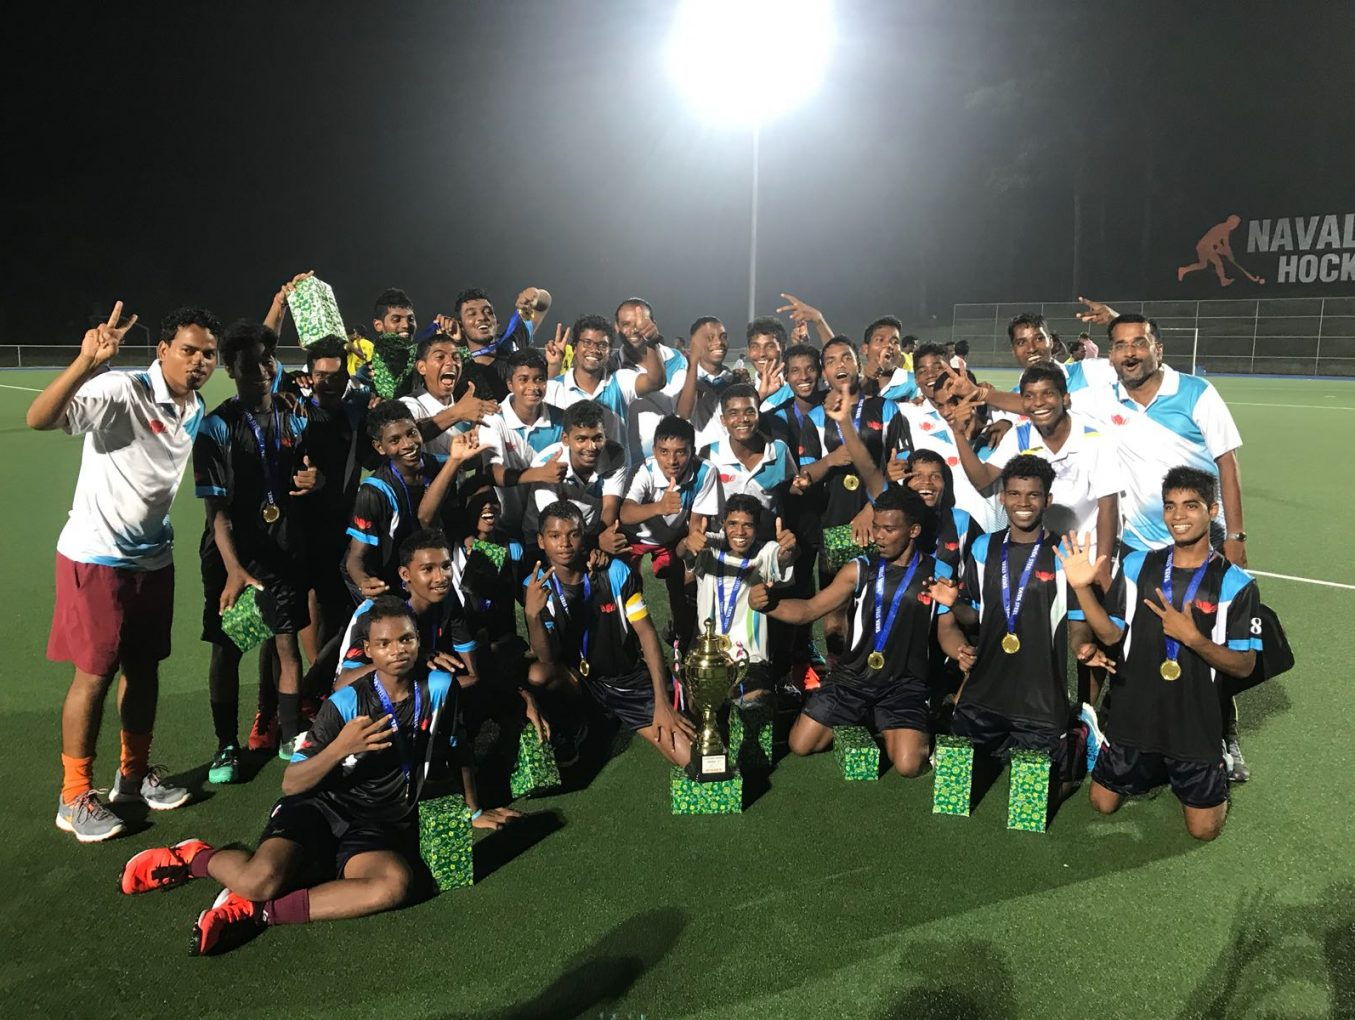 Naval Tata Hockey Academy boys win their first tournament